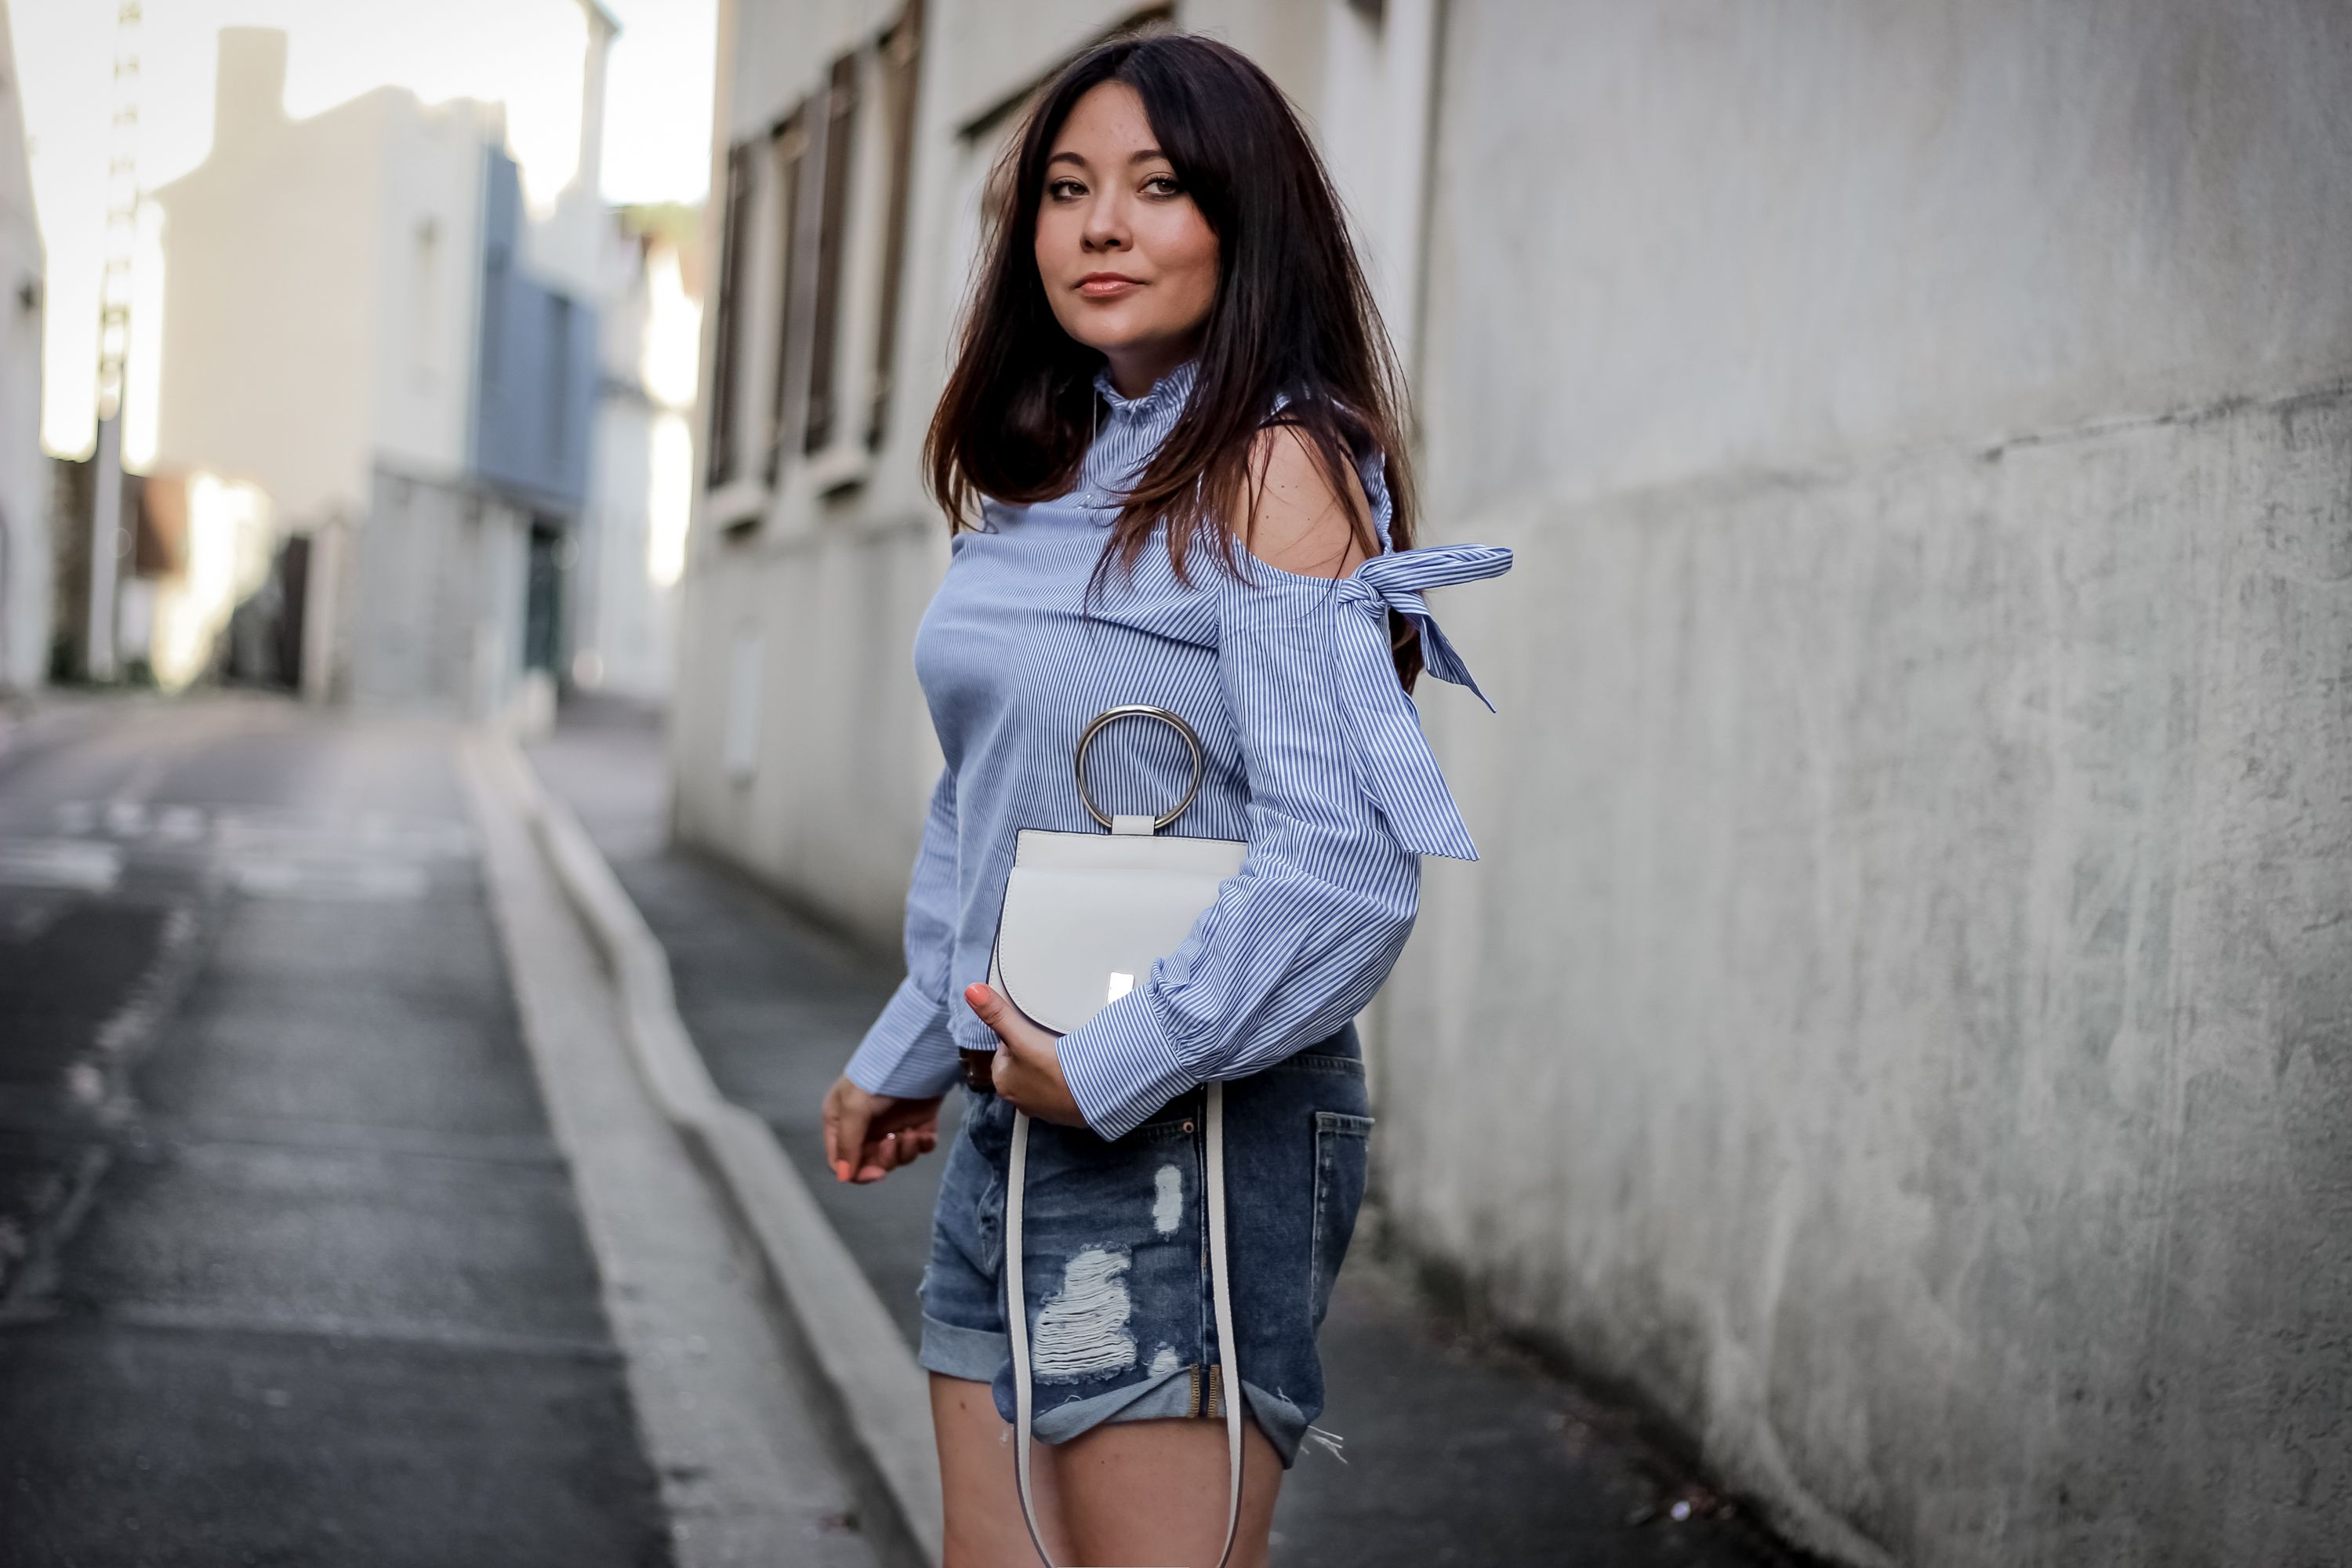 espadrille femme, espadrilles boucles, forever 21, shein, blouse volants, short jean femme, short jean destroy, blog mode, blogueuse mode, the green ananas, mango, h&m, crush